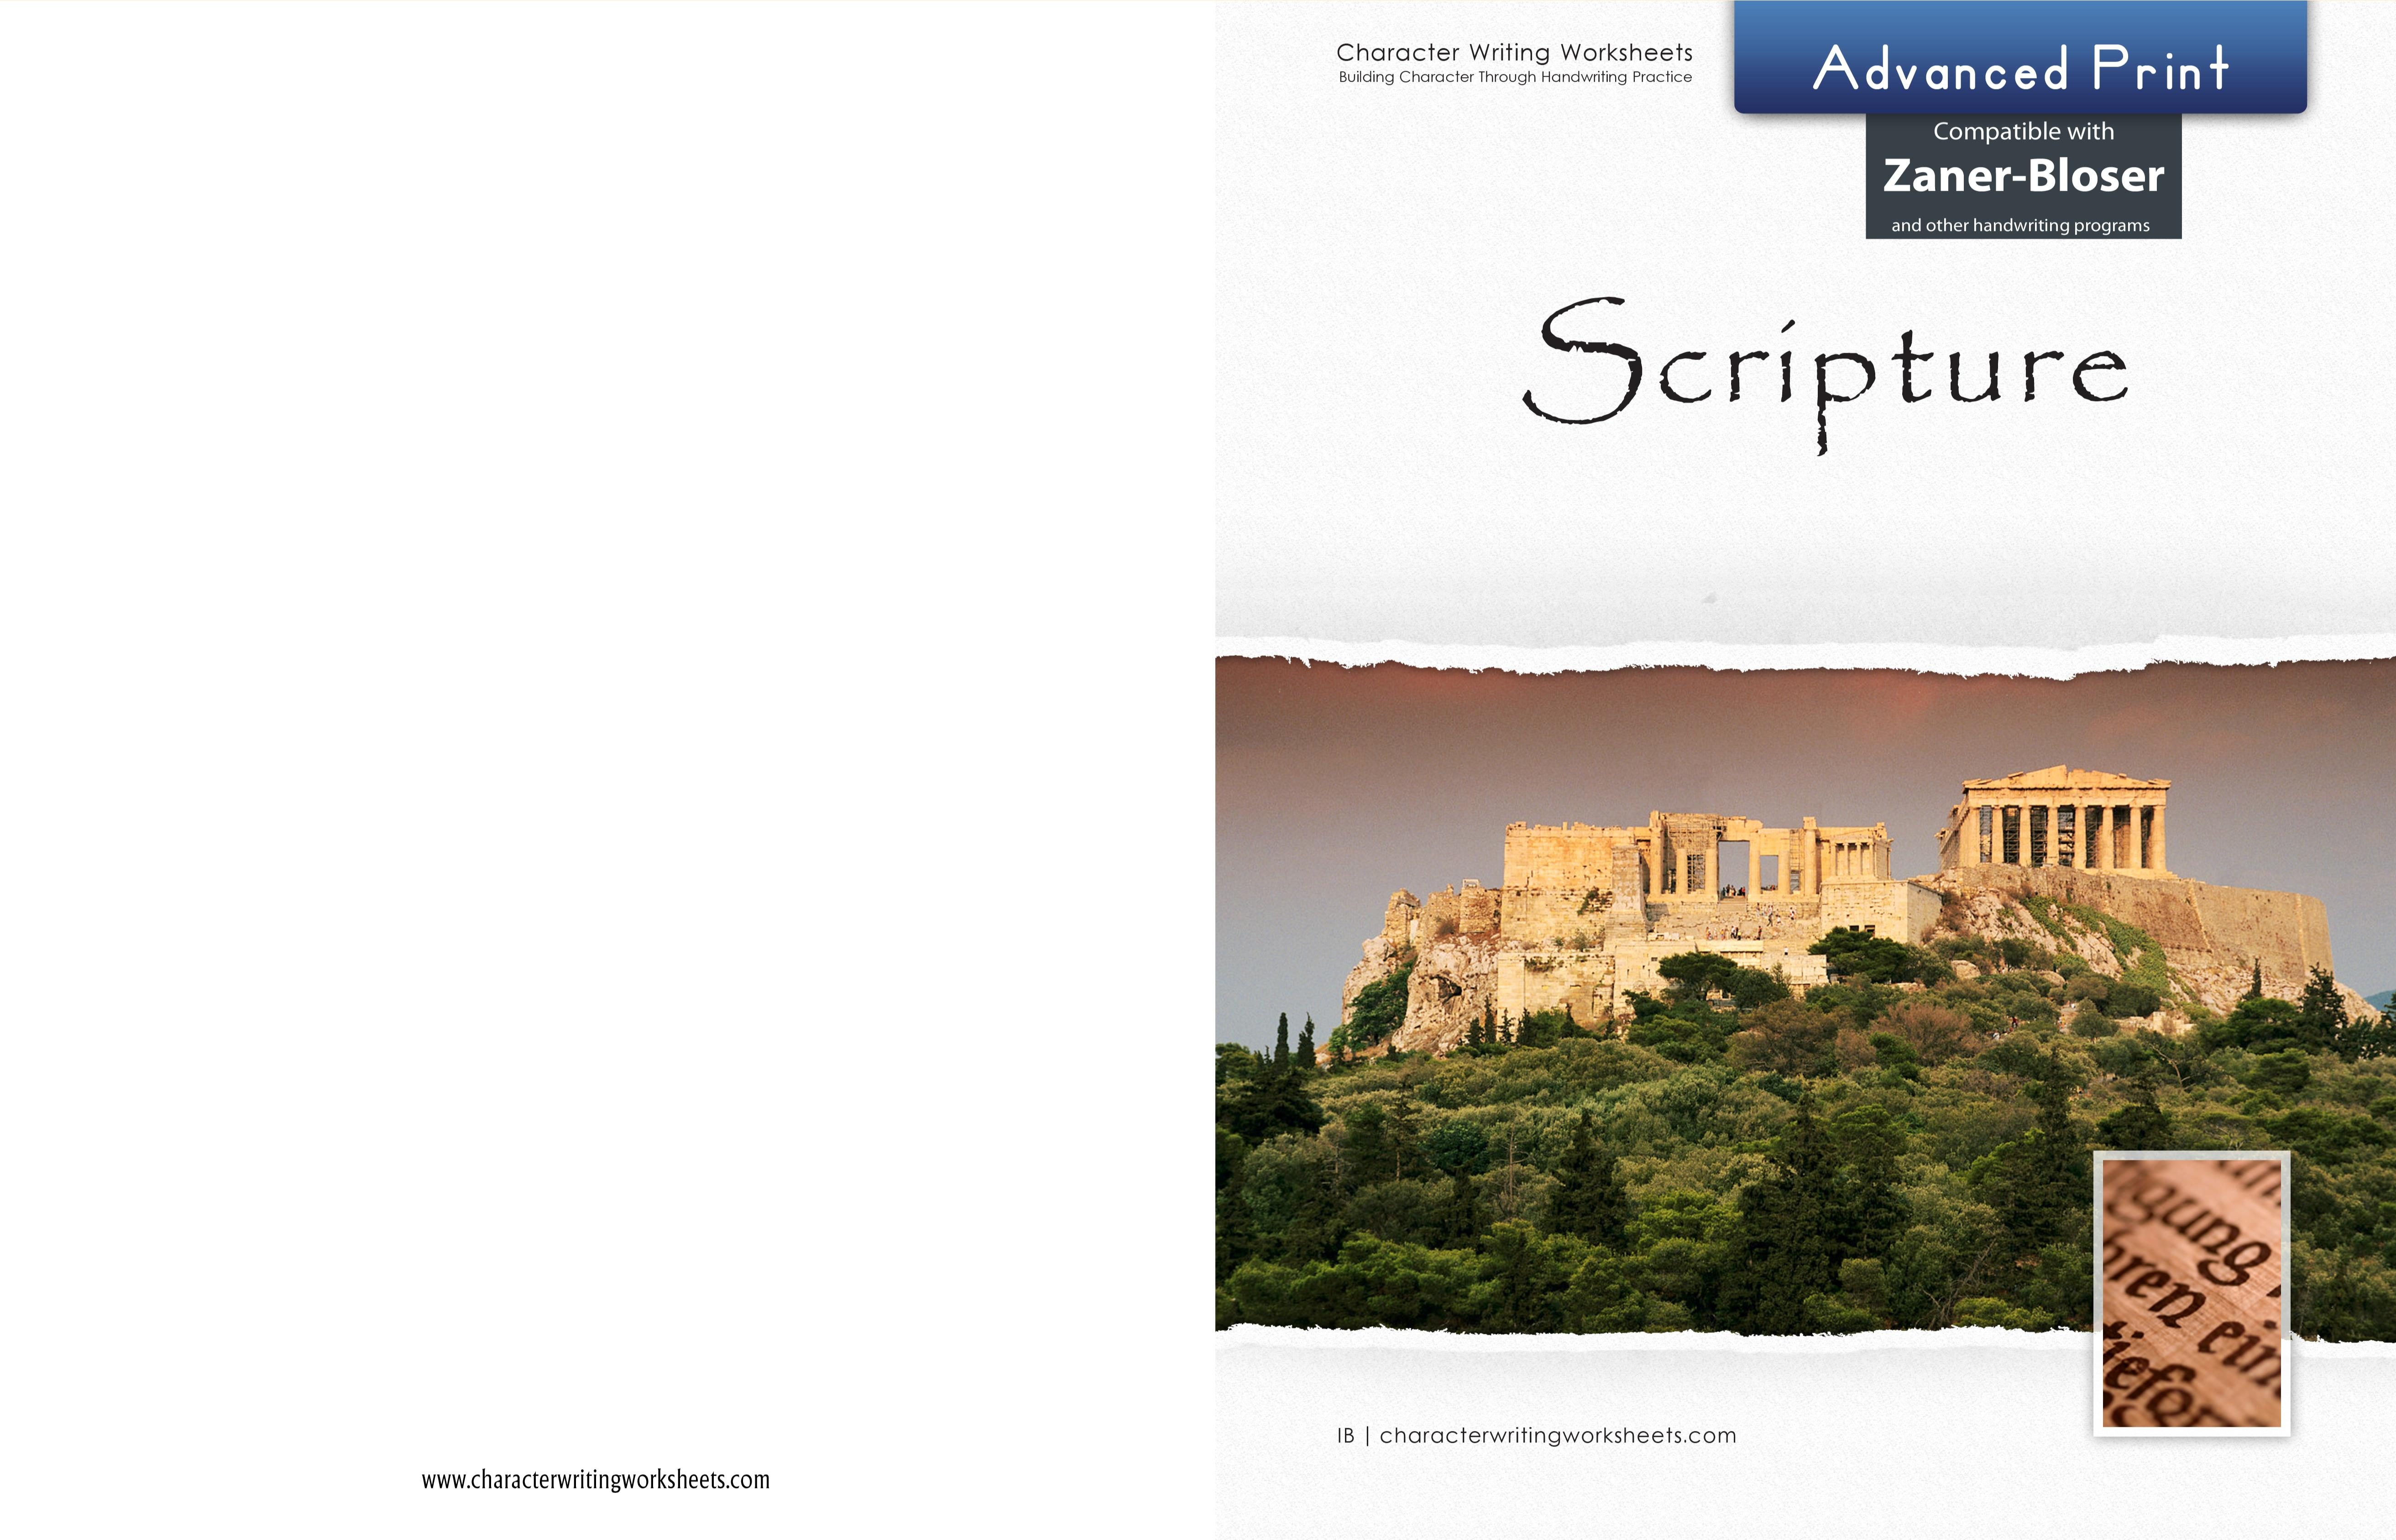 Scripture - ZB - Advanced Print cover image